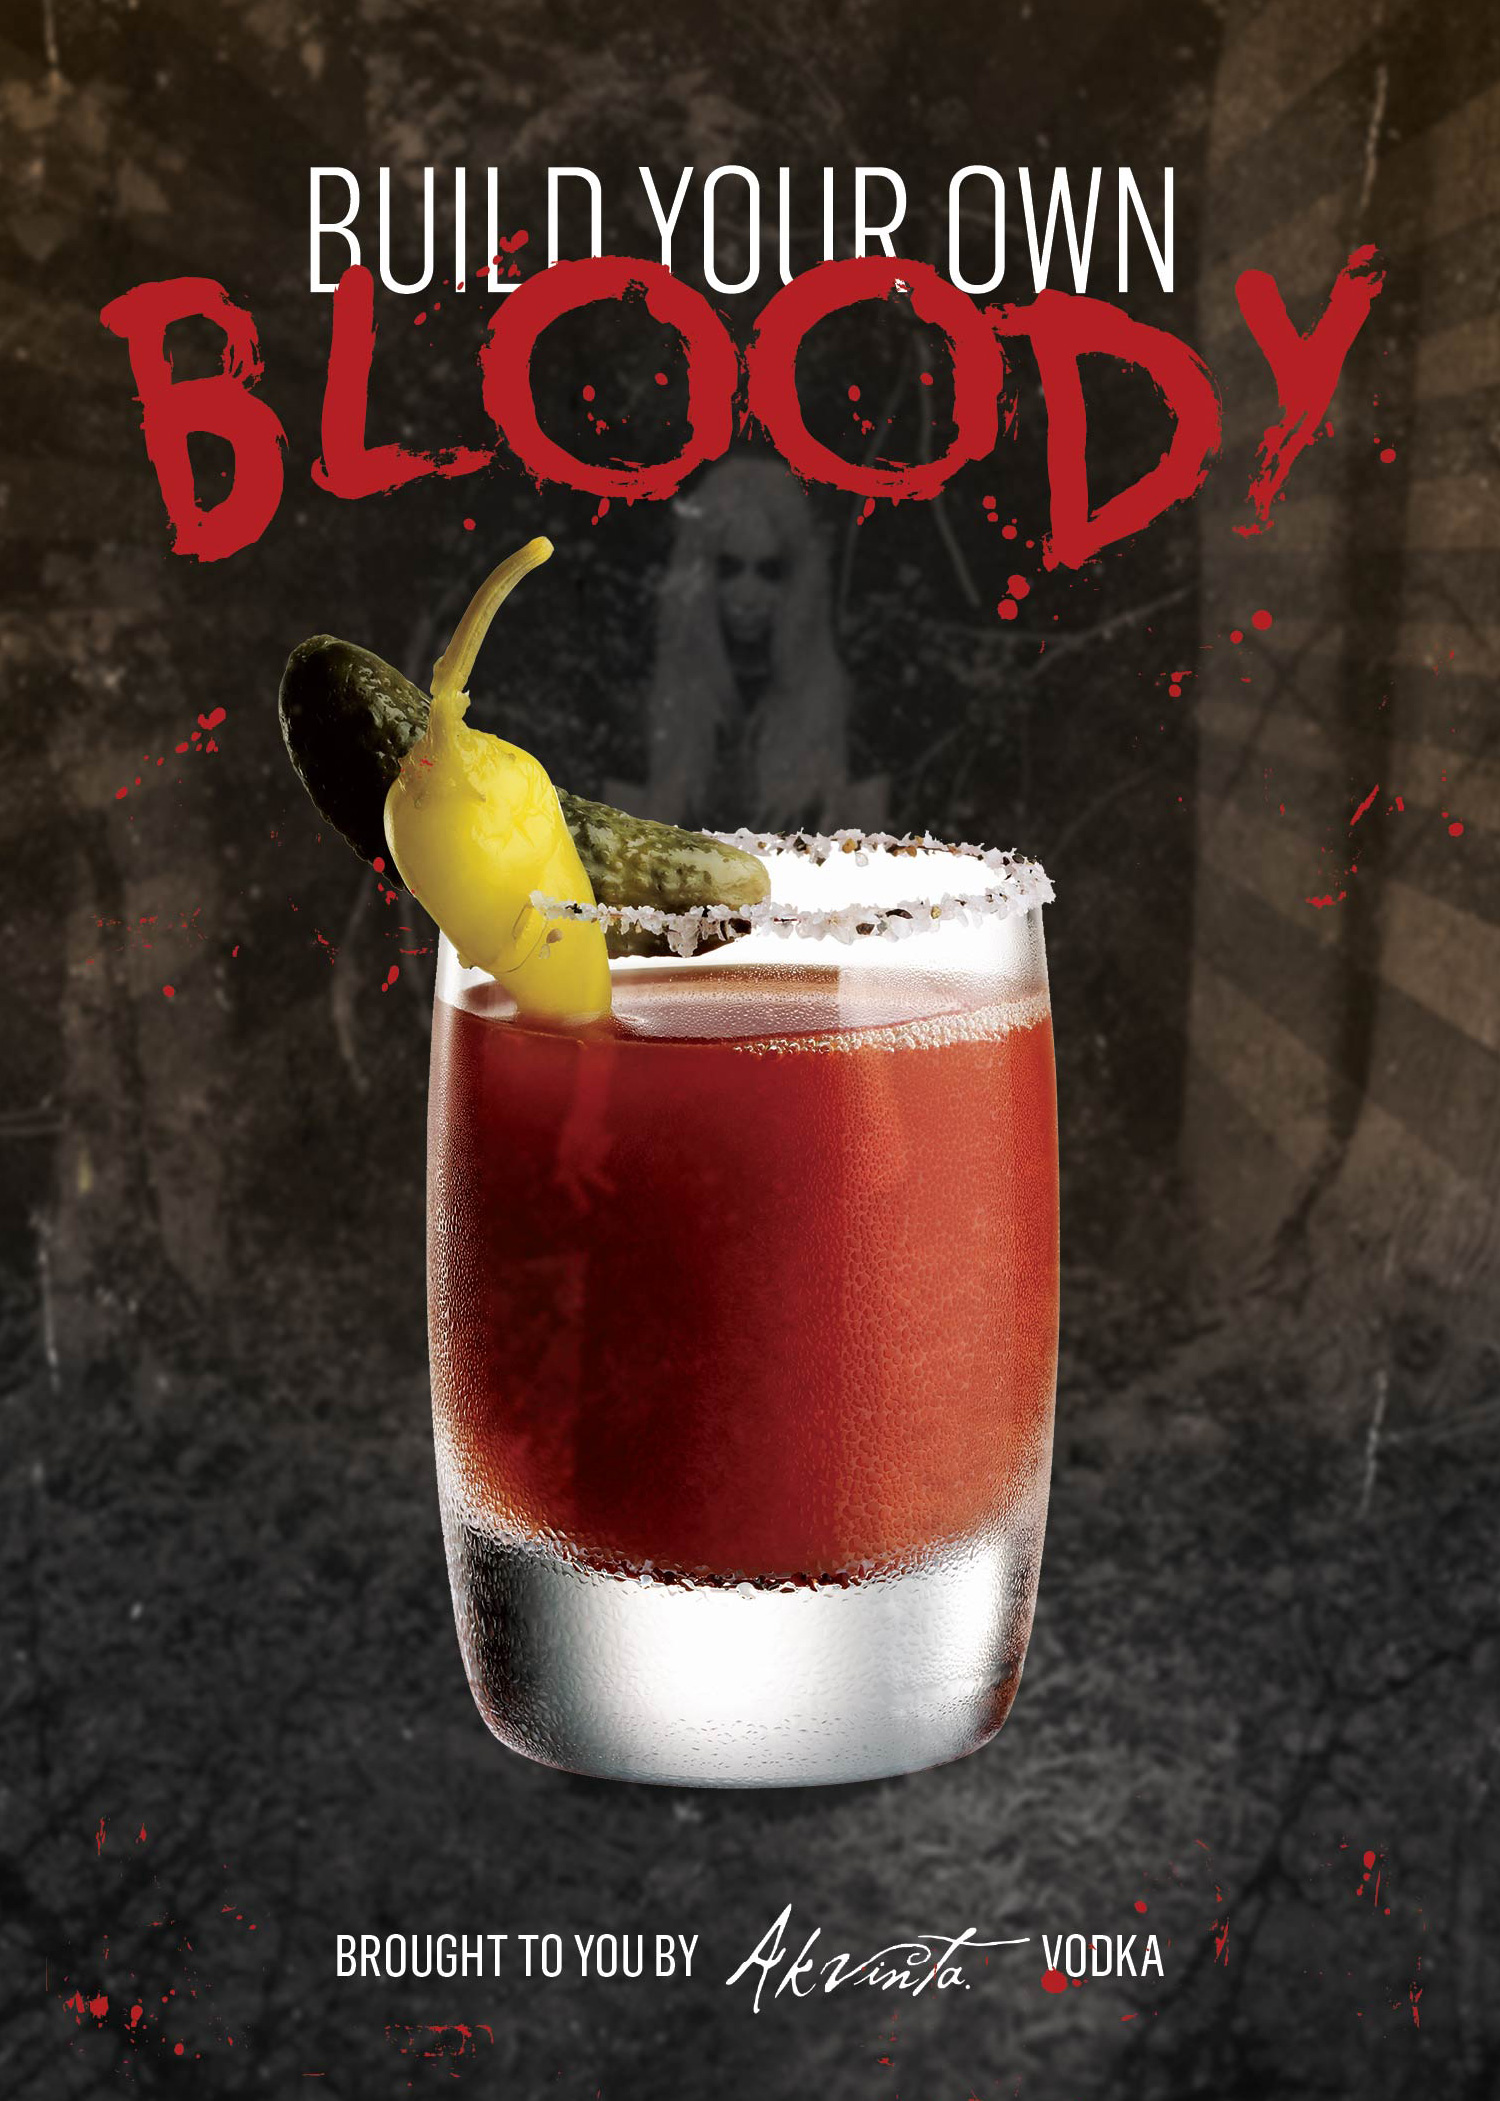 Custom bar menu designed for our build your own bloody mary bar.